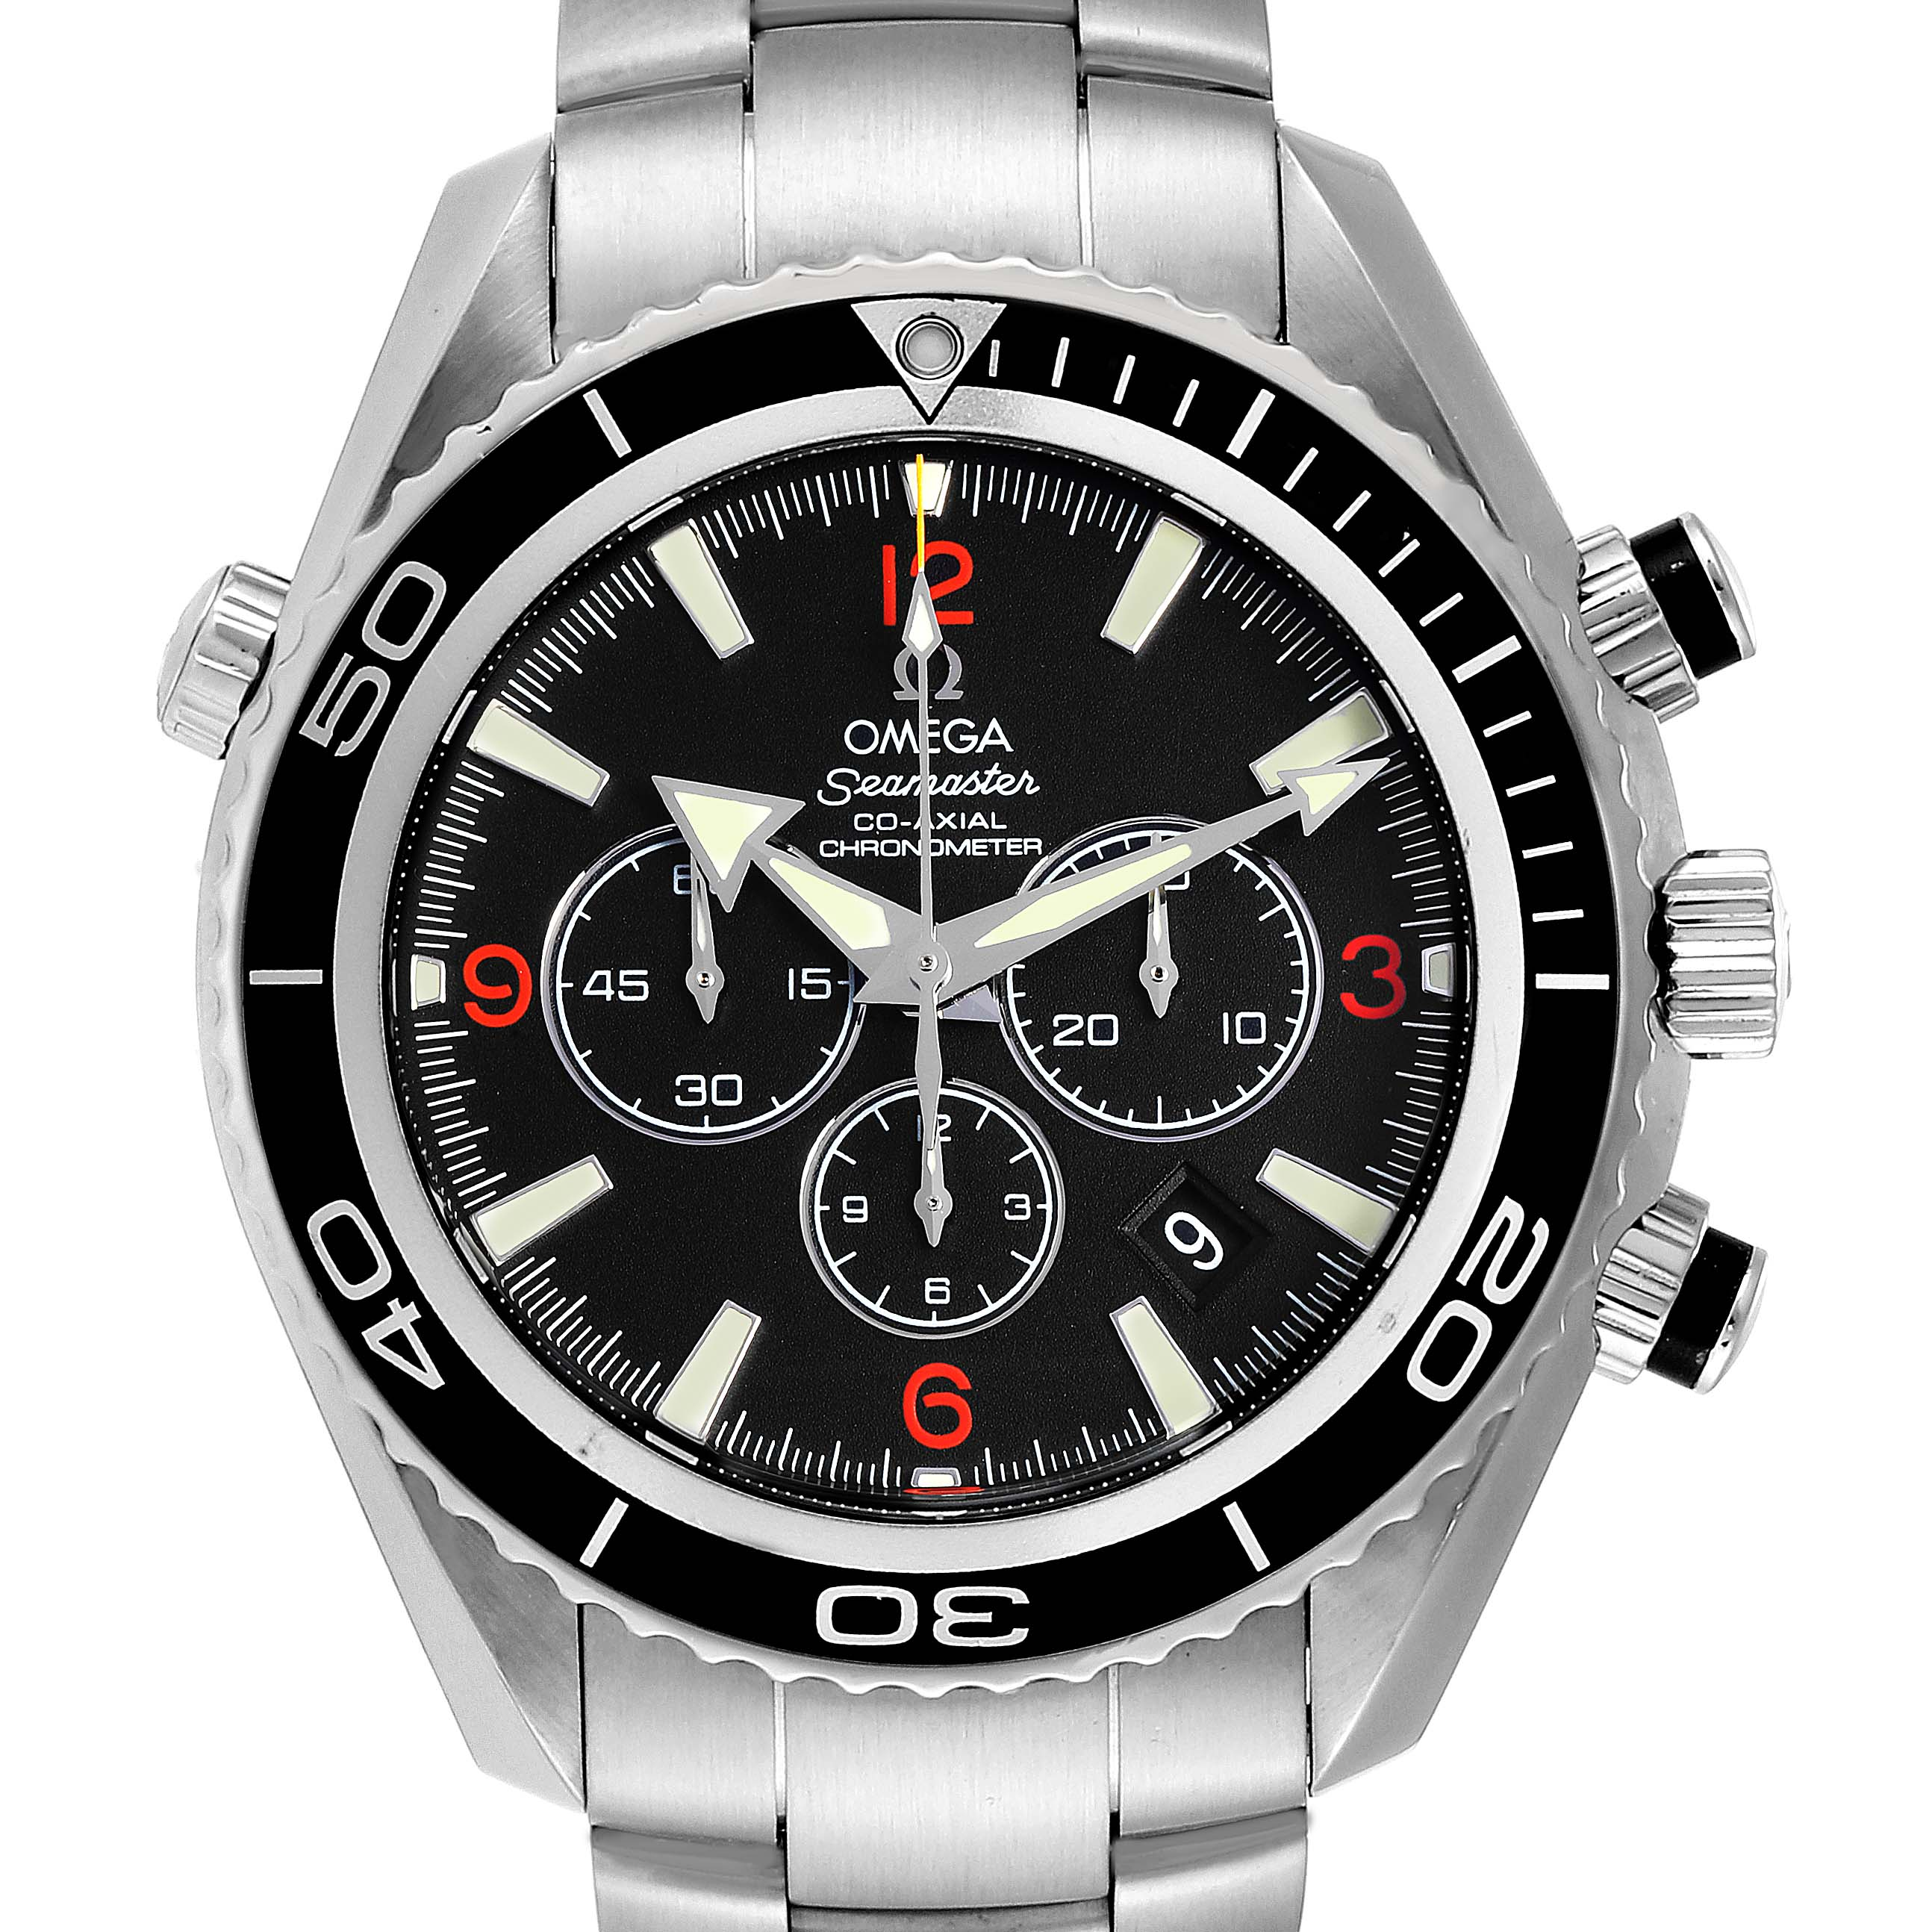 Omega Seamaster Planet Ocean Chronograph 45.5 mm Mens Watch 2210.51.00